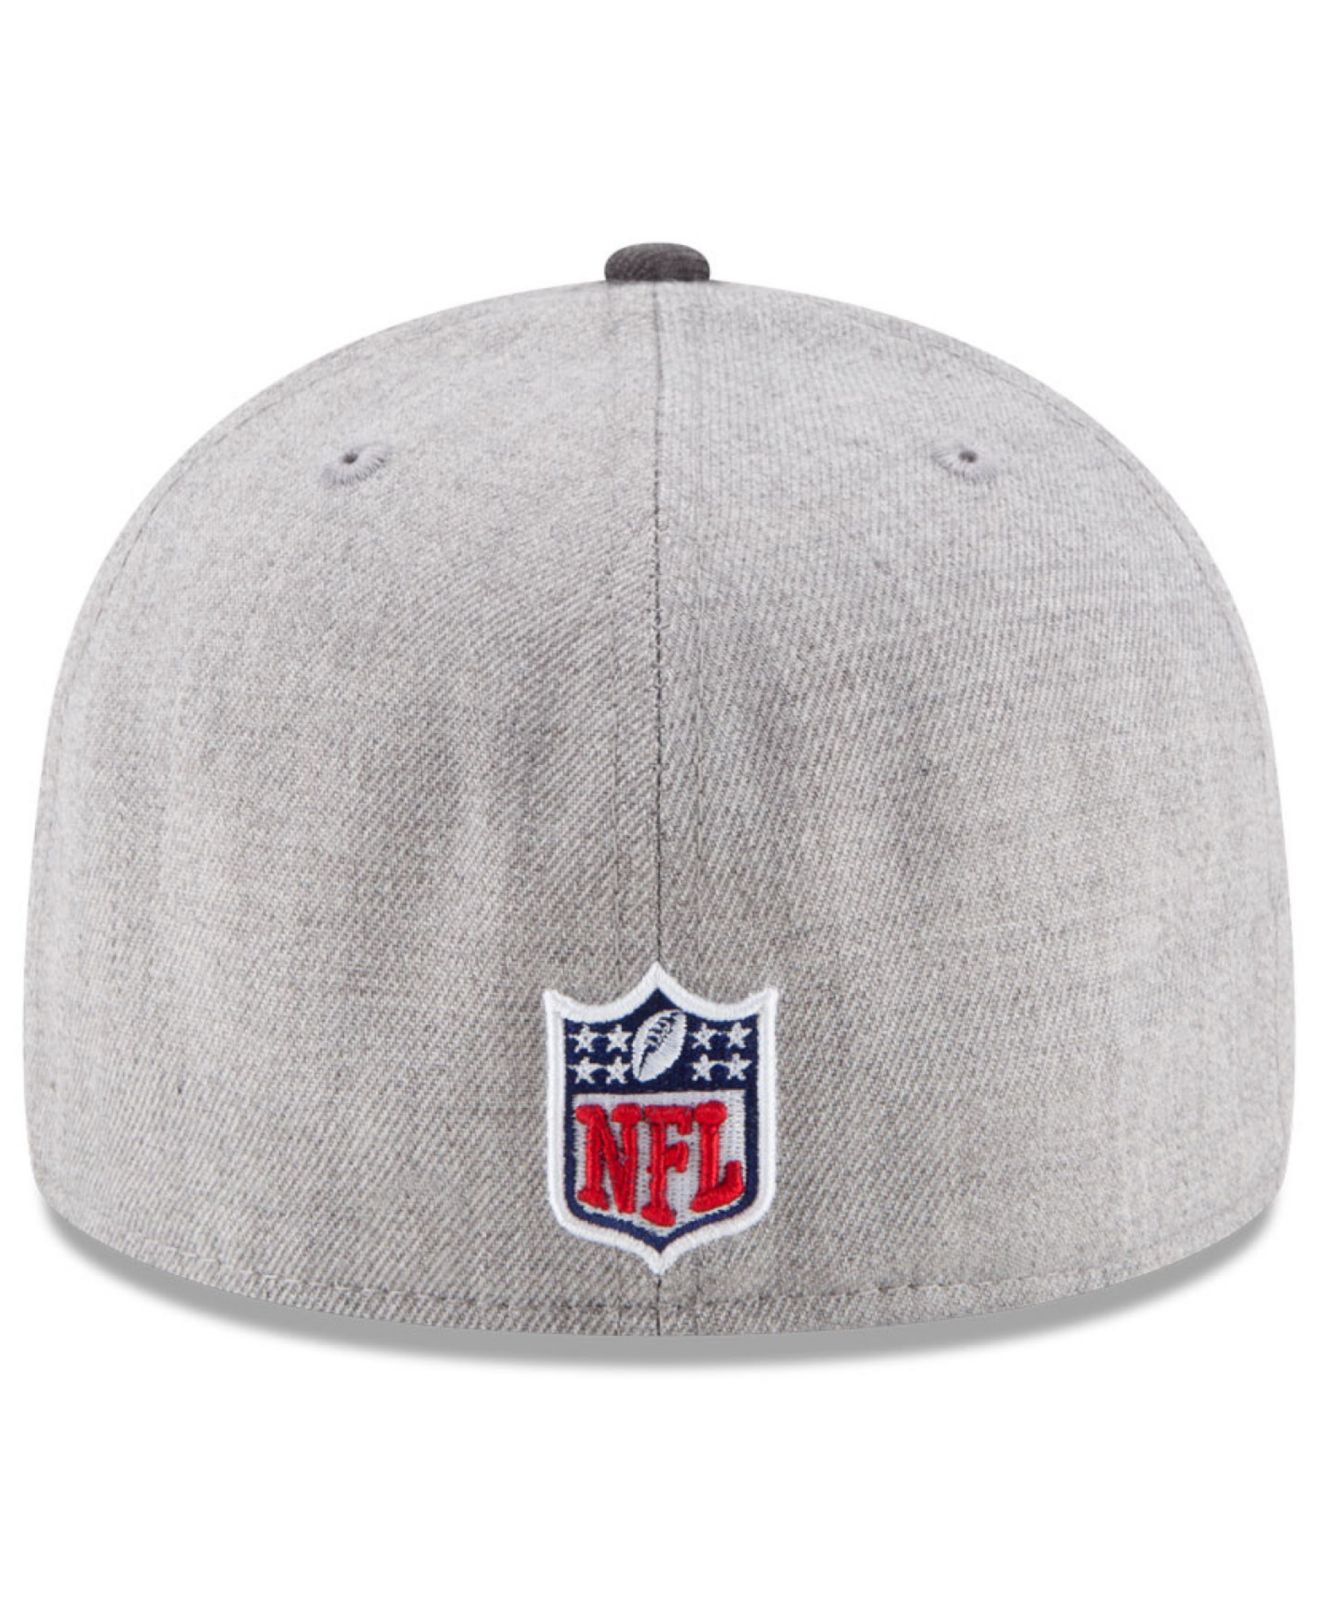 4c69683101164 promo code  neweralosangelesramsnflbreastcancerawarenesslowprofile59fiftycapgray c5ab8  bd731  coupon lyst ktz los angeles rams breast cancer awareness ...